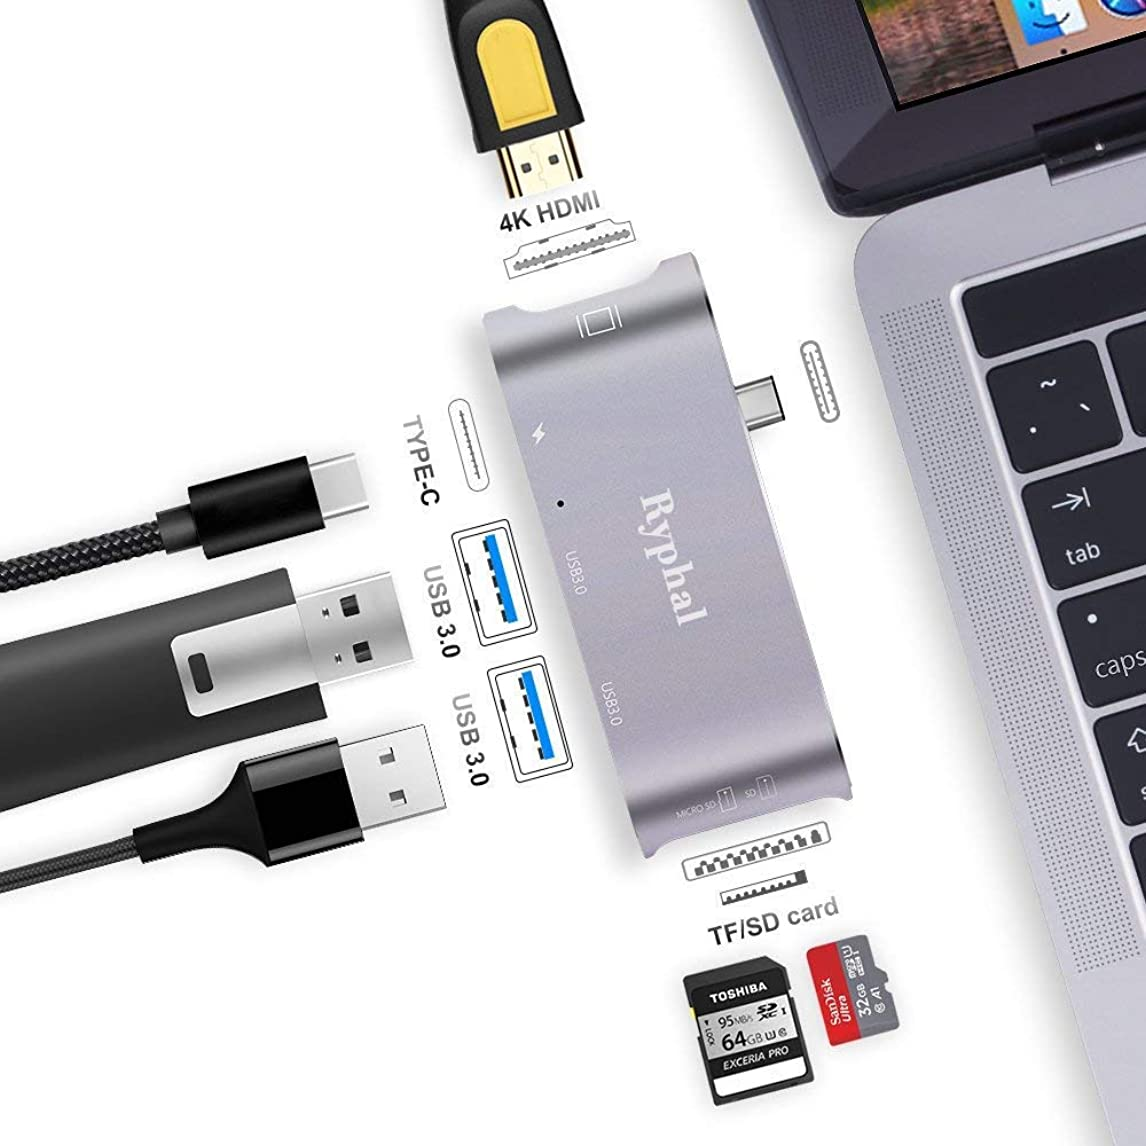 USB C Hub Ryphal MacBook Adapter 6-in-1 Type-C 3.1 USB C Adapter with 2 USB-C 3.0 Ports,SD/TF Card Reader,HDMI Port&PD Charging Port for MacBook Pro, etc (Space Grey) bvnr0888944757